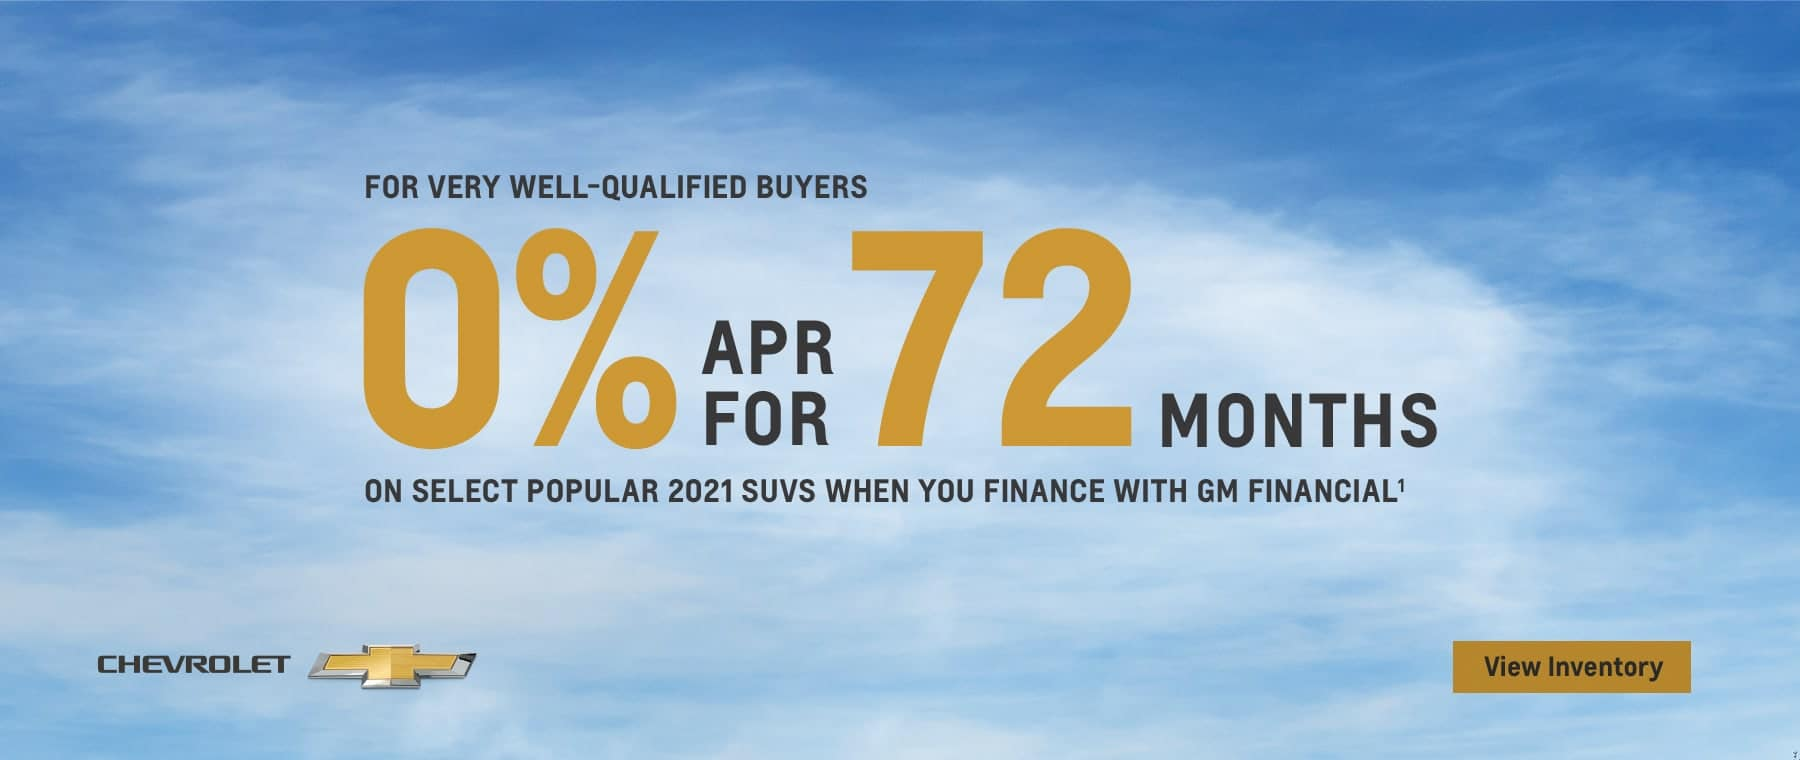 For very well-qualified buyers 0% APR for 72 months on select popular 2021 models when you finance with GM financial.